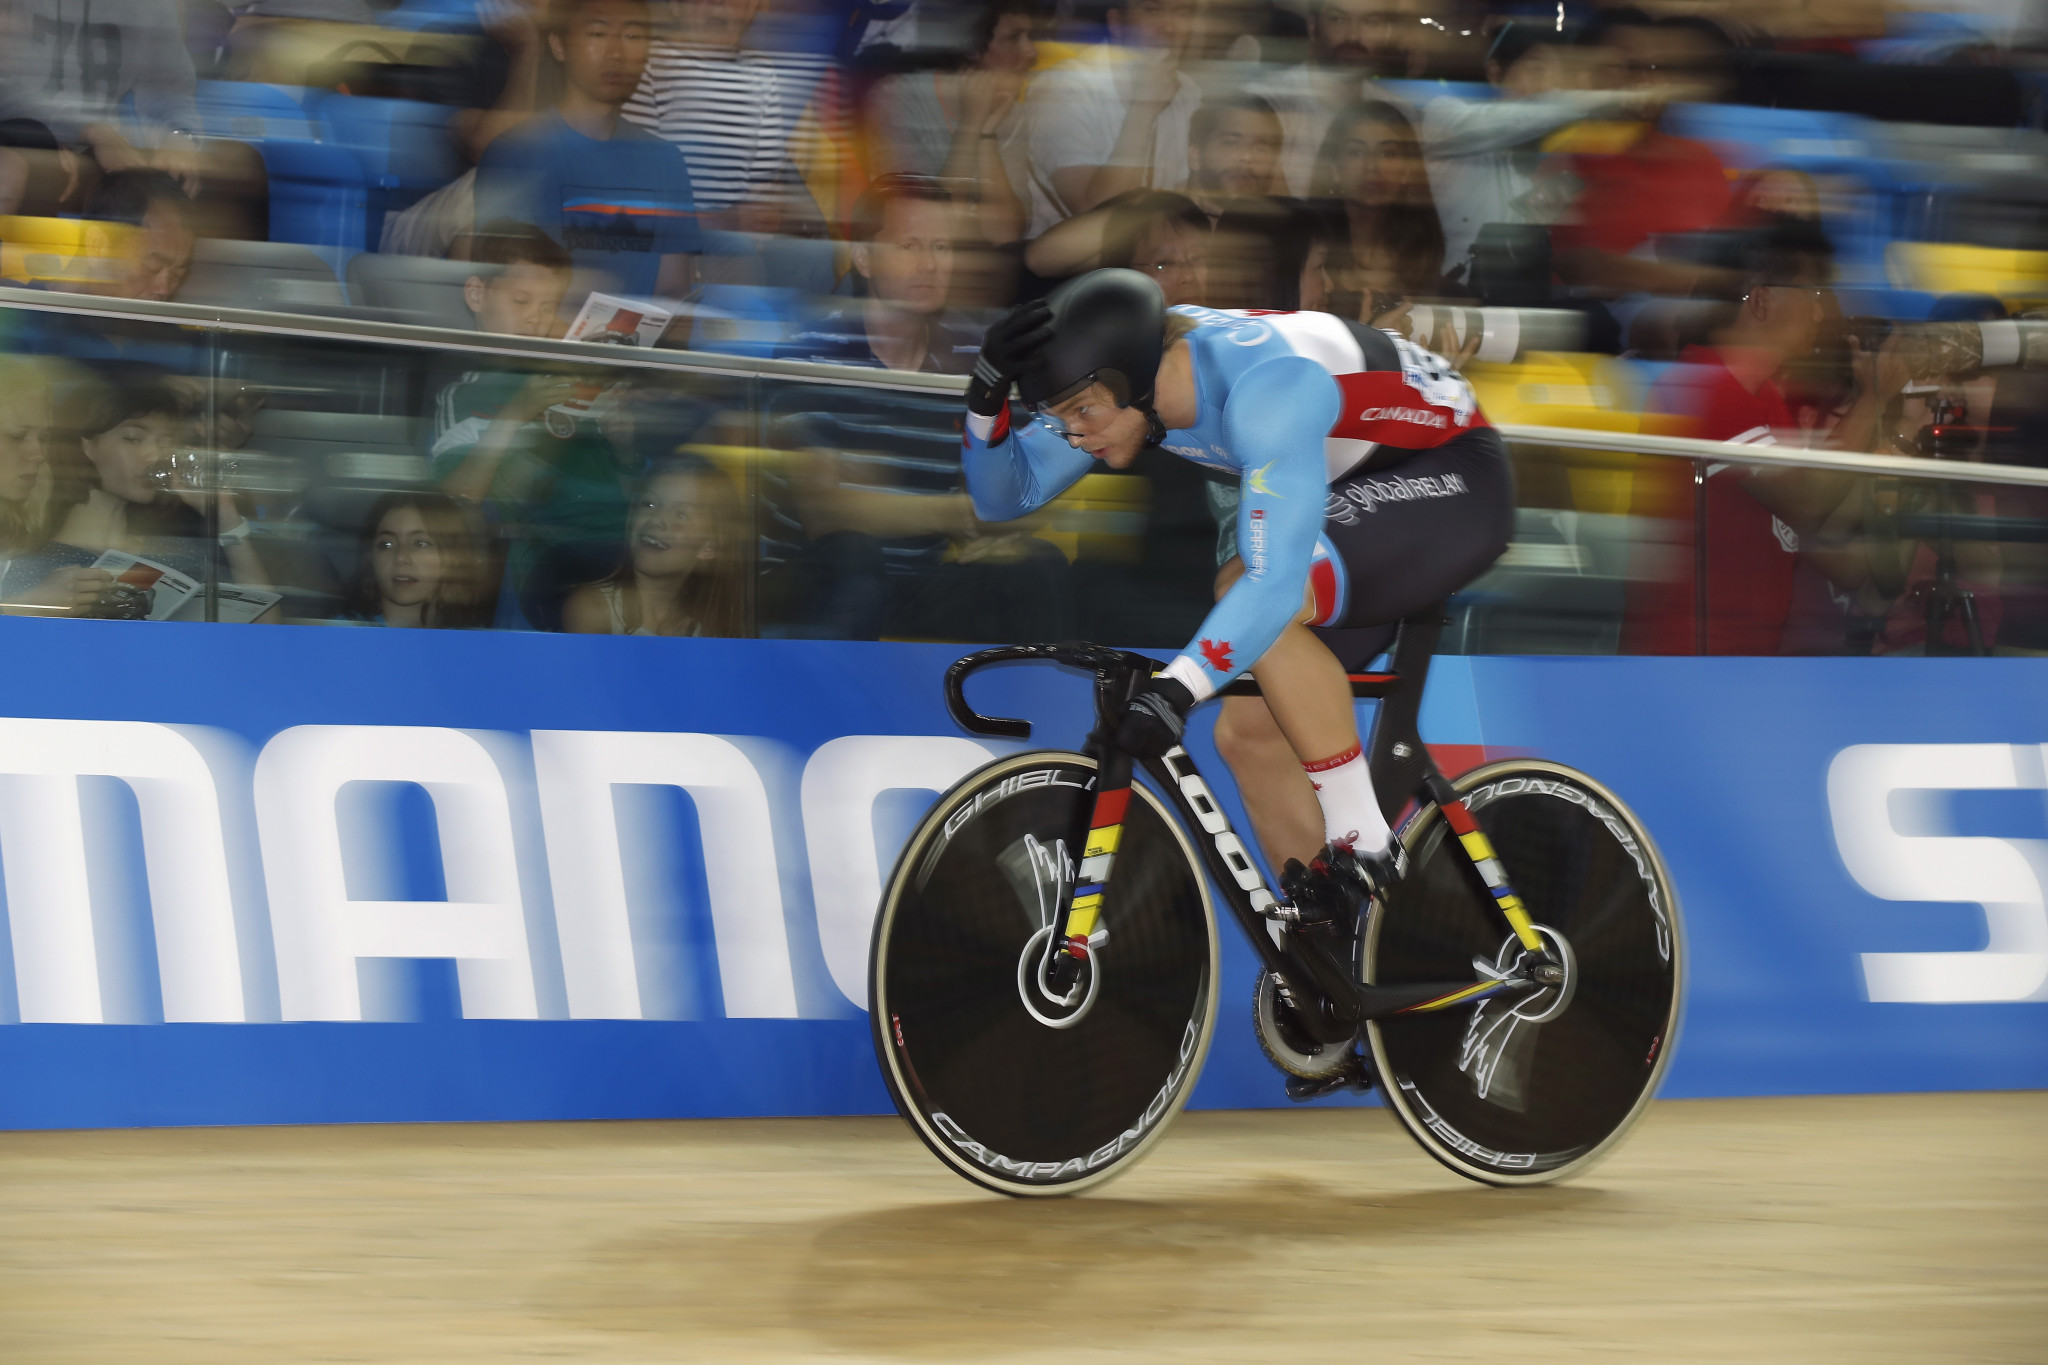 Milton to stage third UCI Track Cycling World Cup of season